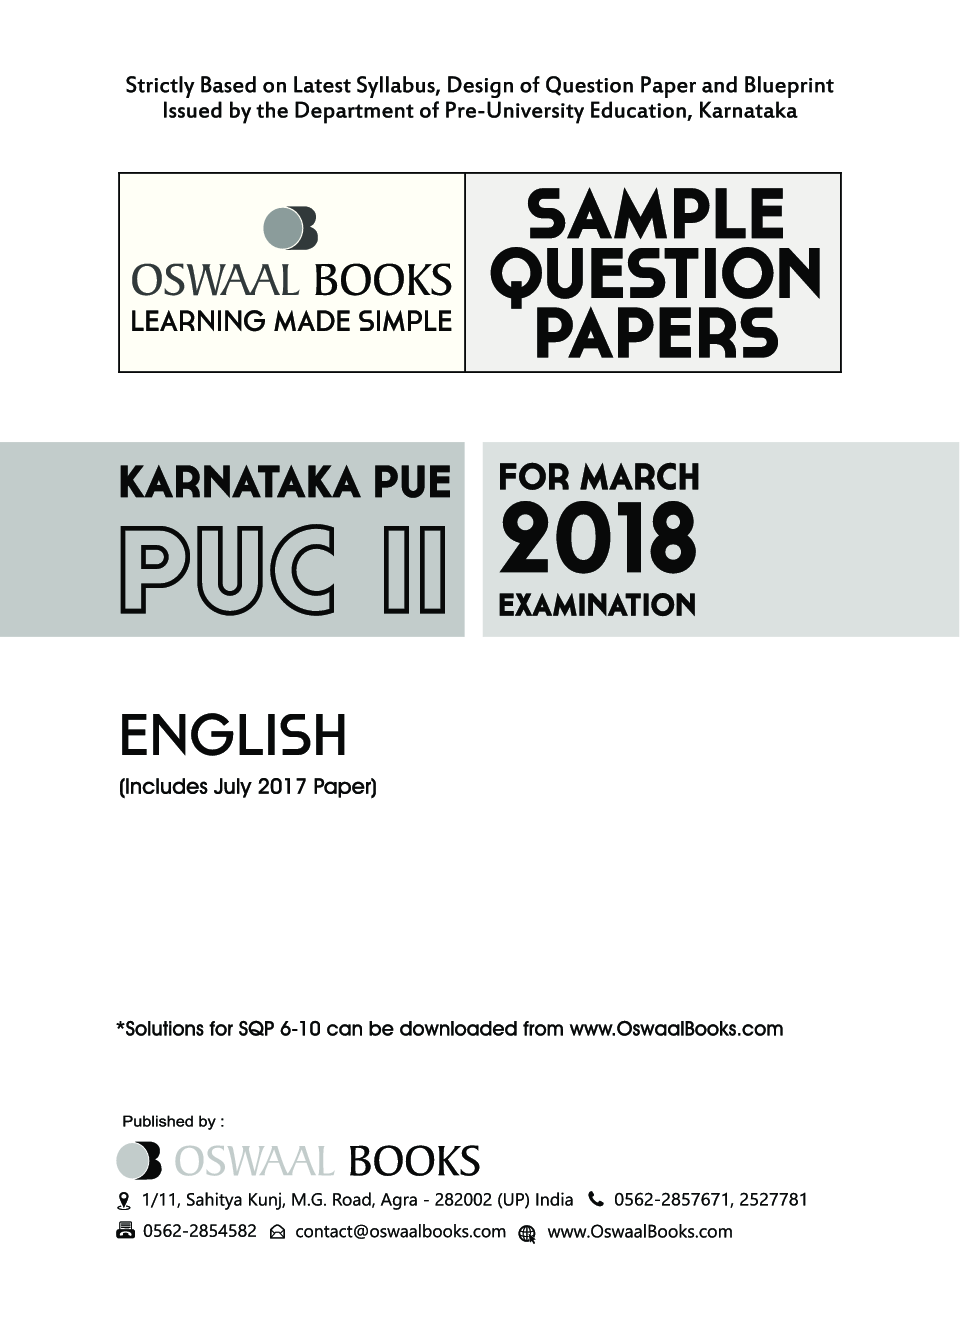 Download oswaal karnataka pue sample question papers for puc ii oswaal karnataka pue sample question papers for puc ii english march 2018 exam by panel of experts malvernweather Gallery